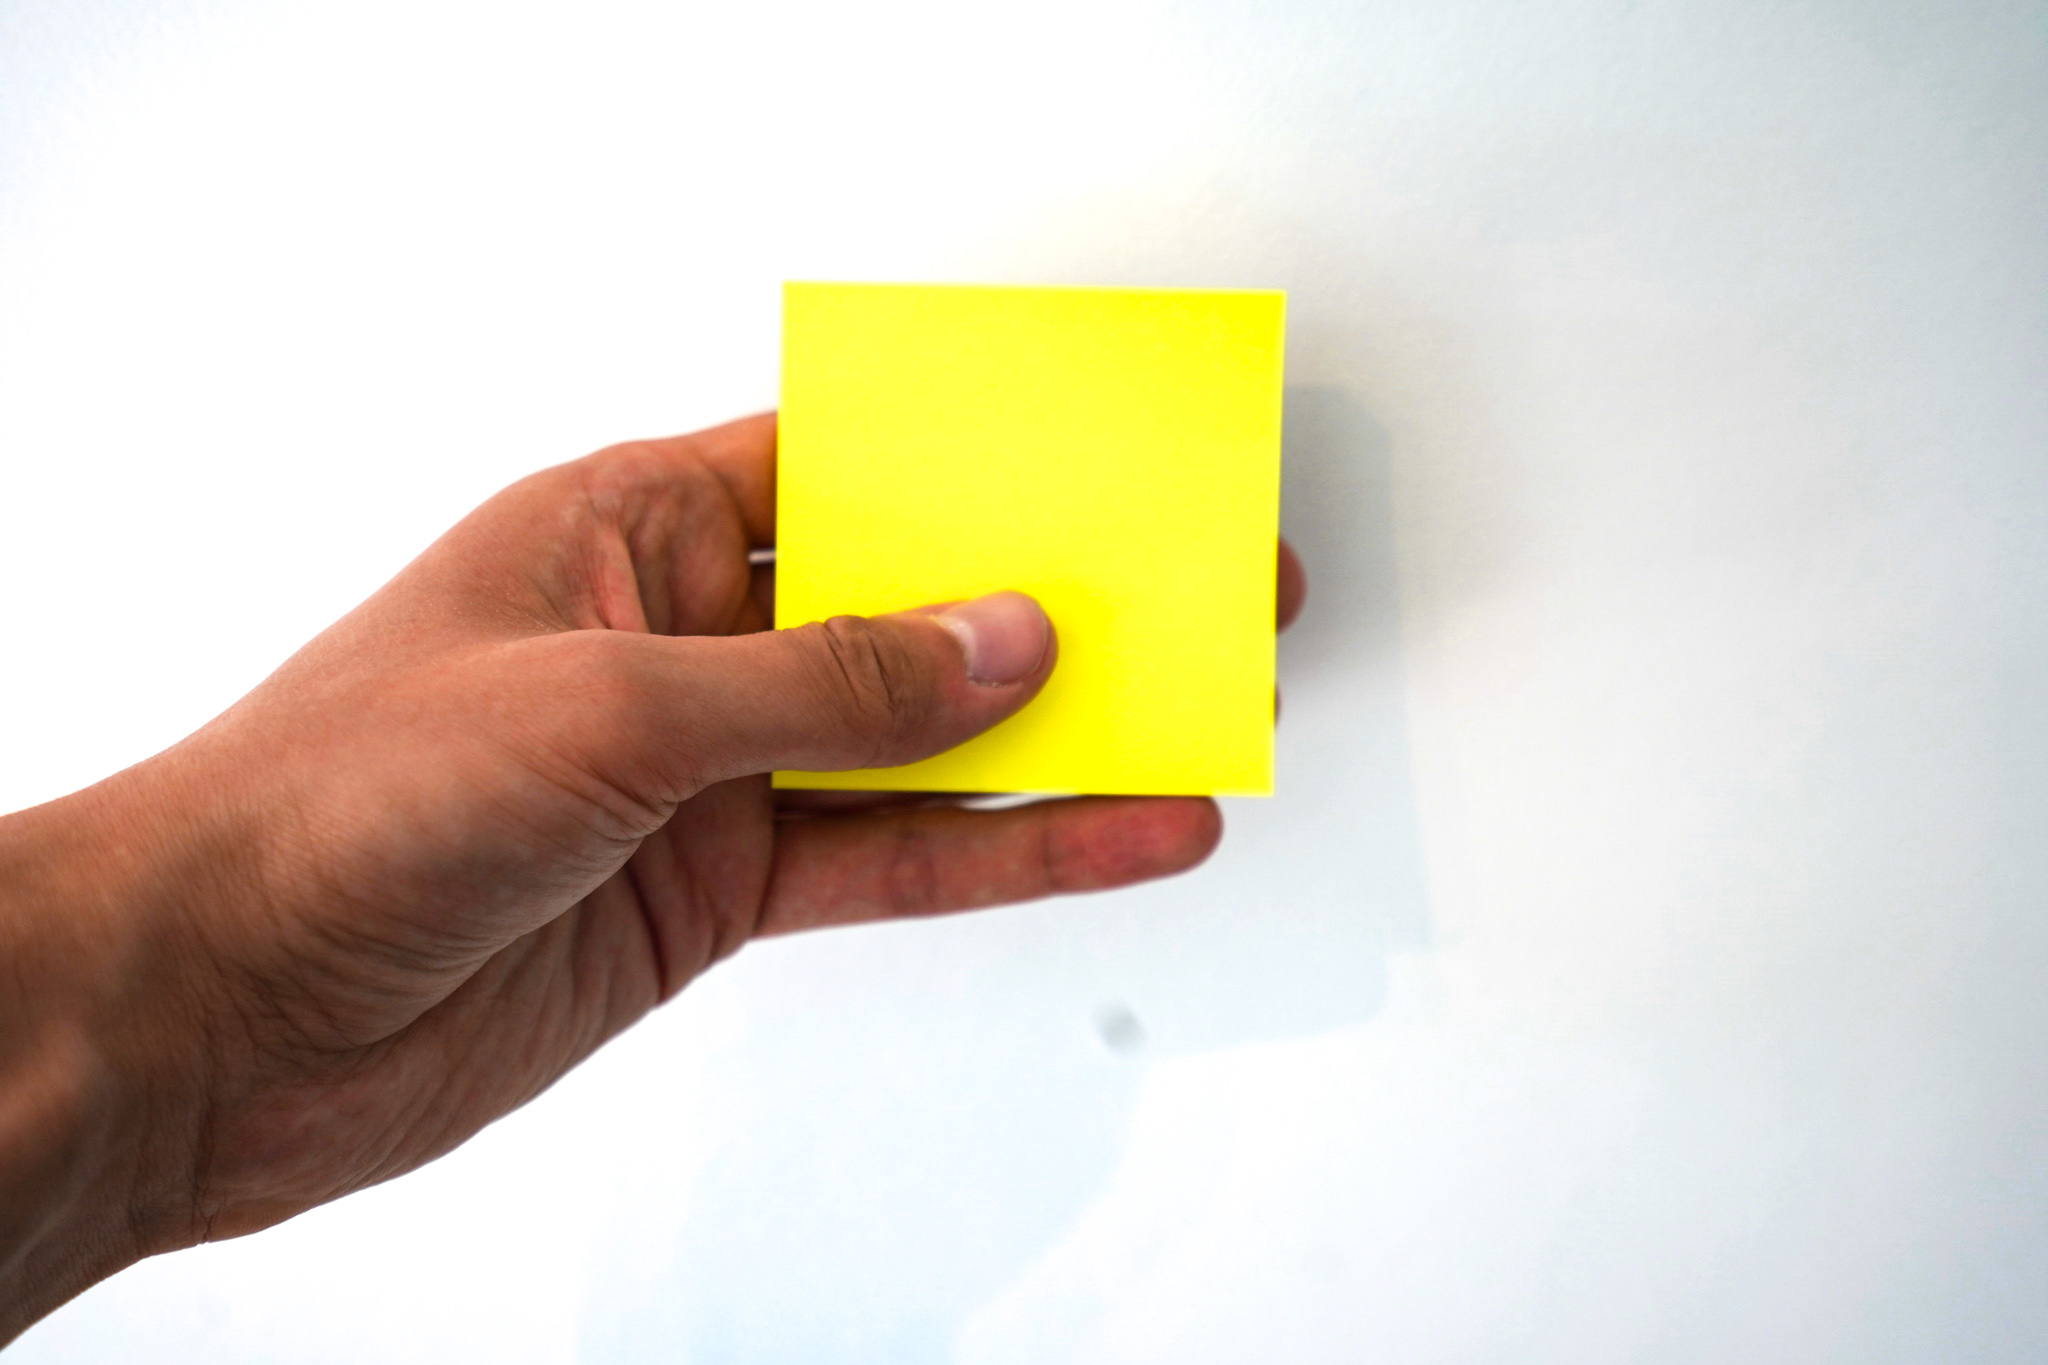 Yes, there is a right and a wrong way to do post-its